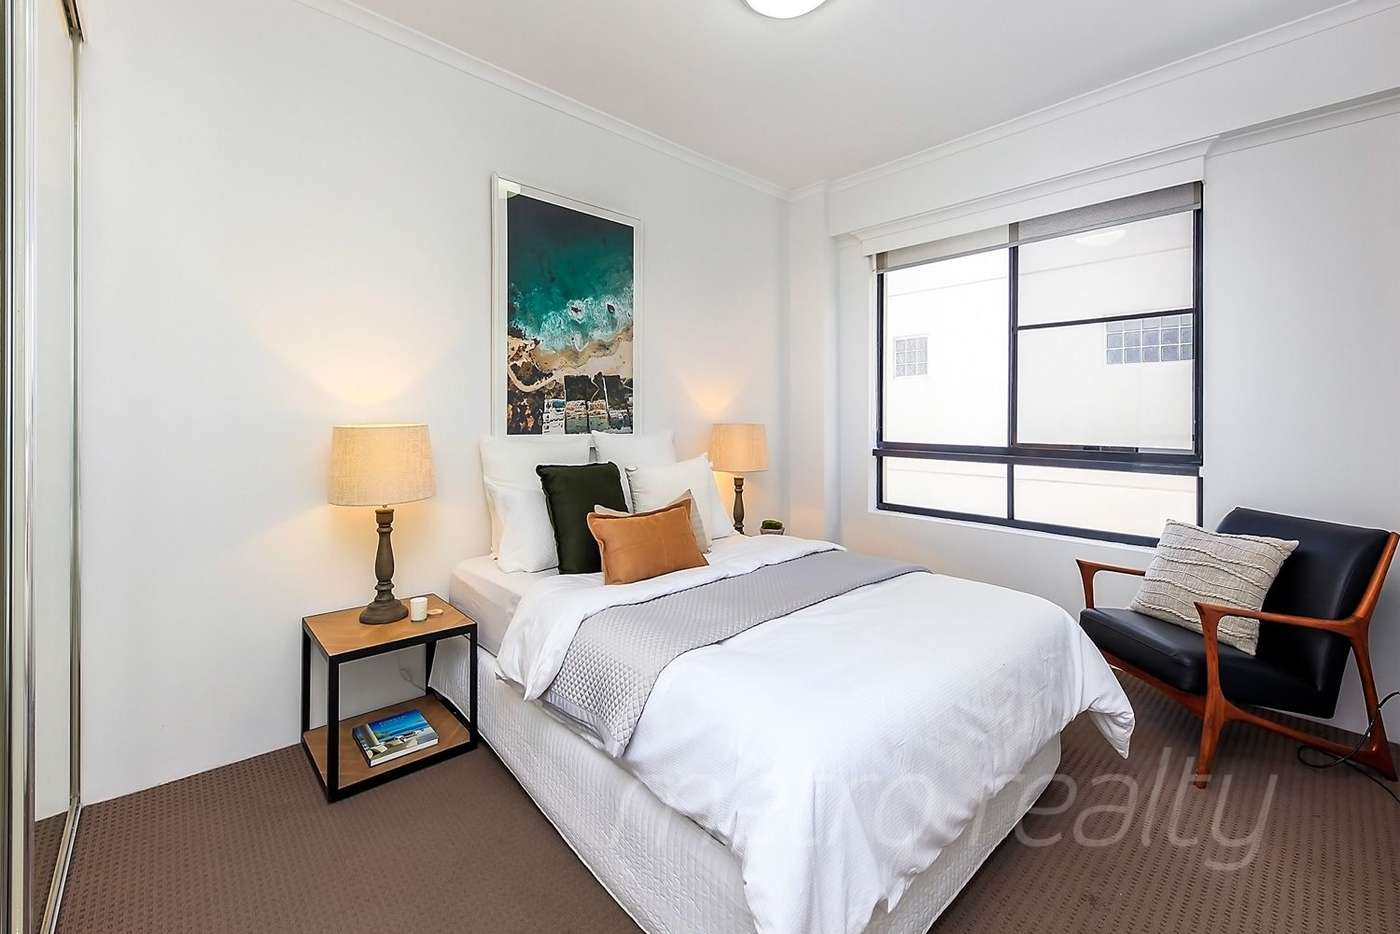 Fifth view of Homely apartment listing, 170/365 Kent St, Sydney NSW 2000